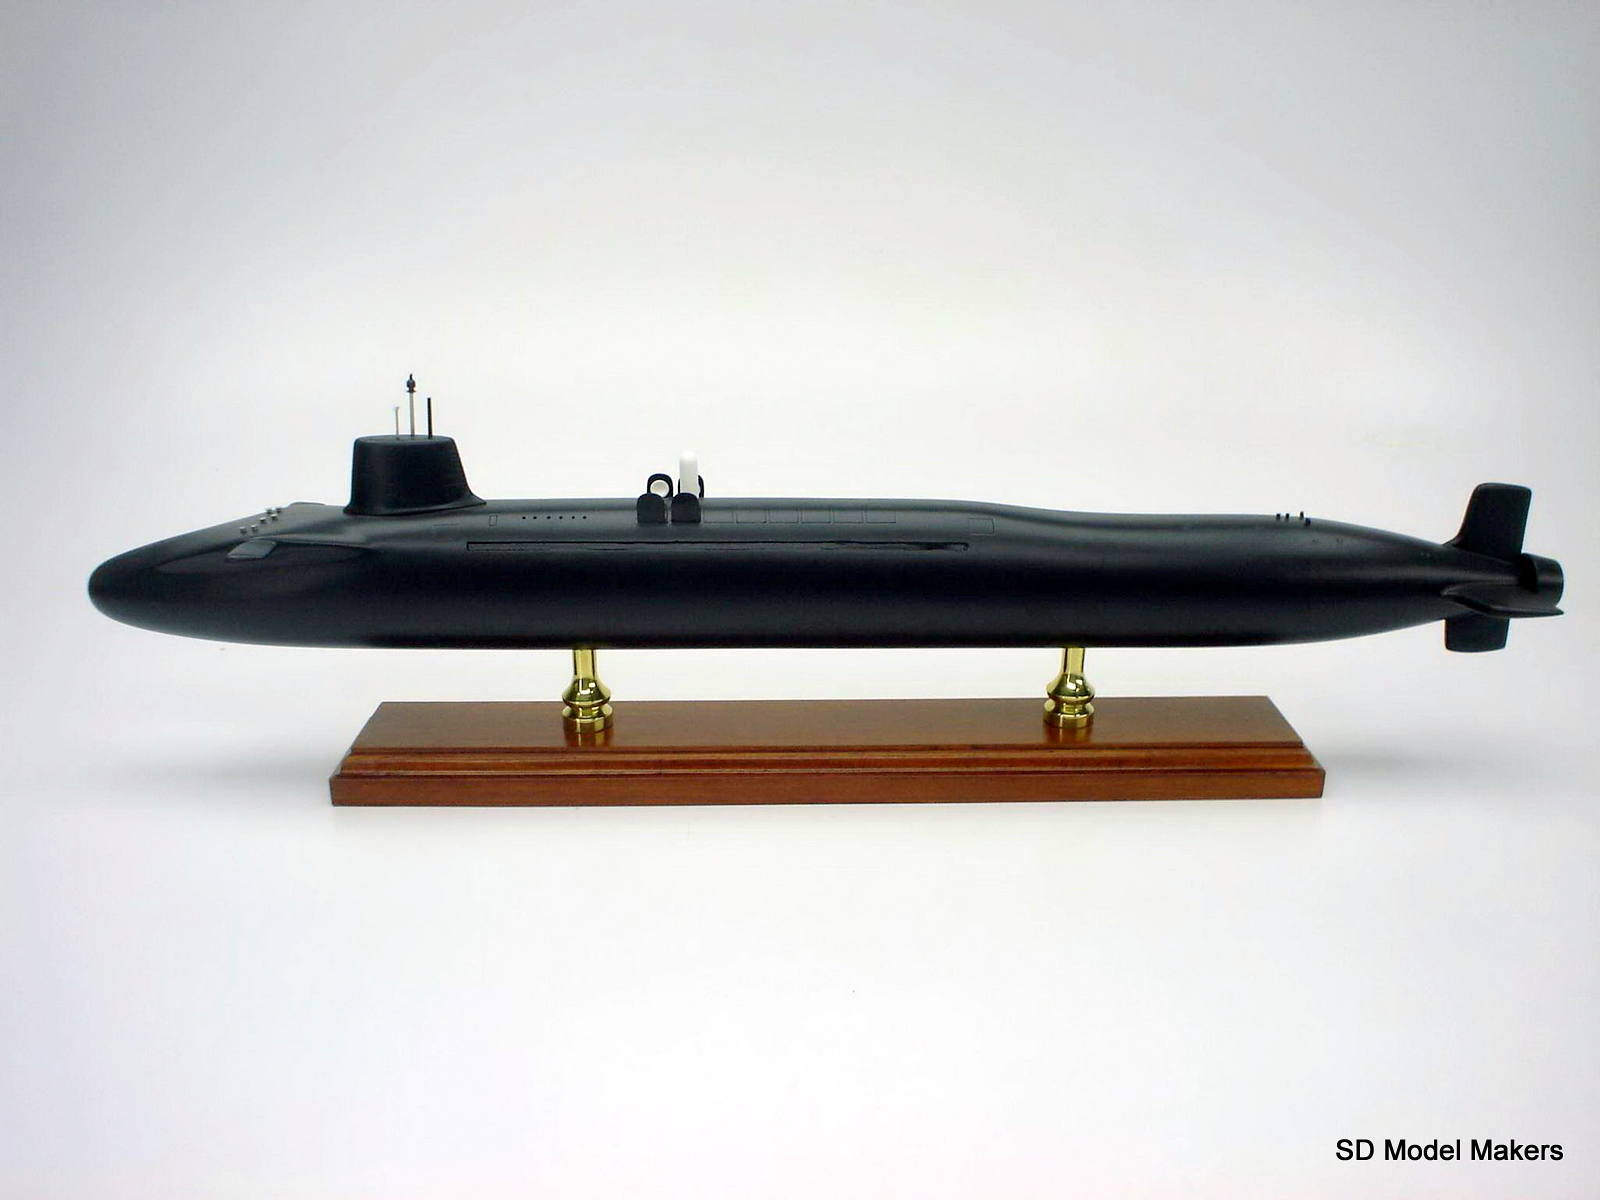 SD Model Makers > Submarine Models > British Navy Submarine